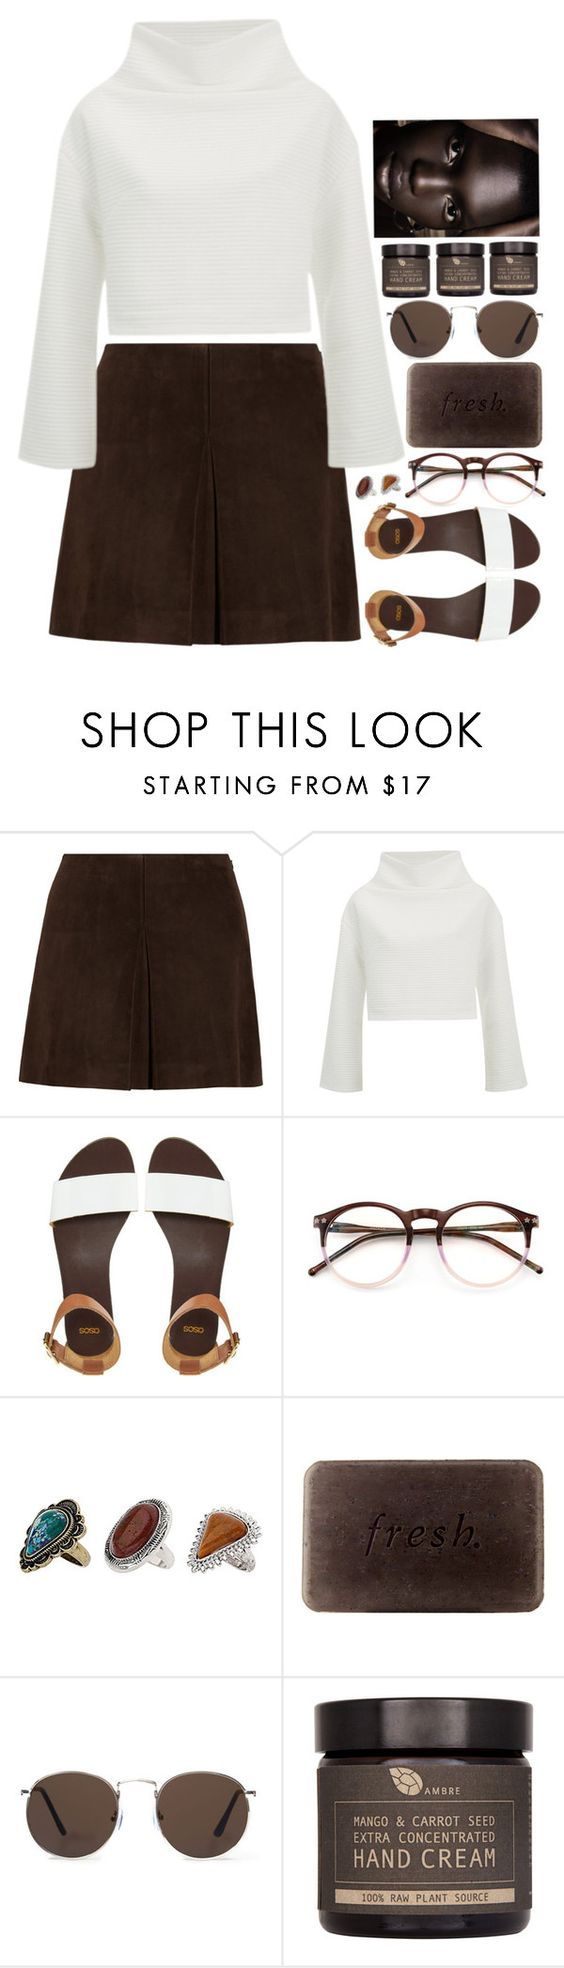 """""""3911"""" by tiffanyelinor ❤ liked on Polyvore featuring Miu Miu, The Fifth Label, ASOS, Wildfox, Topshop, Fresh, MANGO and AMBRE"""